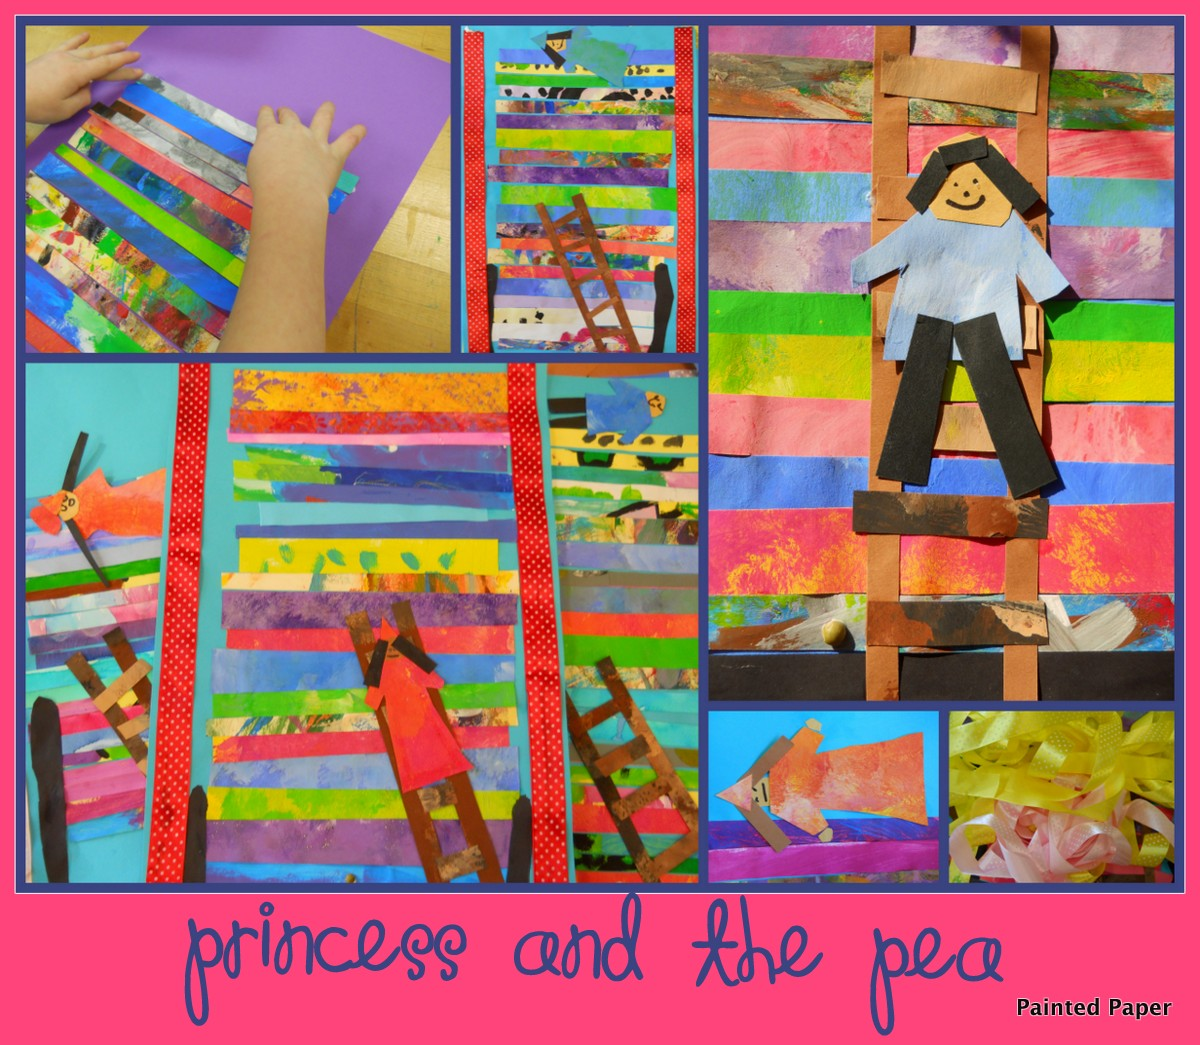 http://3.bp.blogspot.com/-uToALXpVJEA/Tz8Nzo4-ZNI/AAAAAAAABO4/Sc07bh3DuPA/s1600/1-princess+and+the+pea.jpg